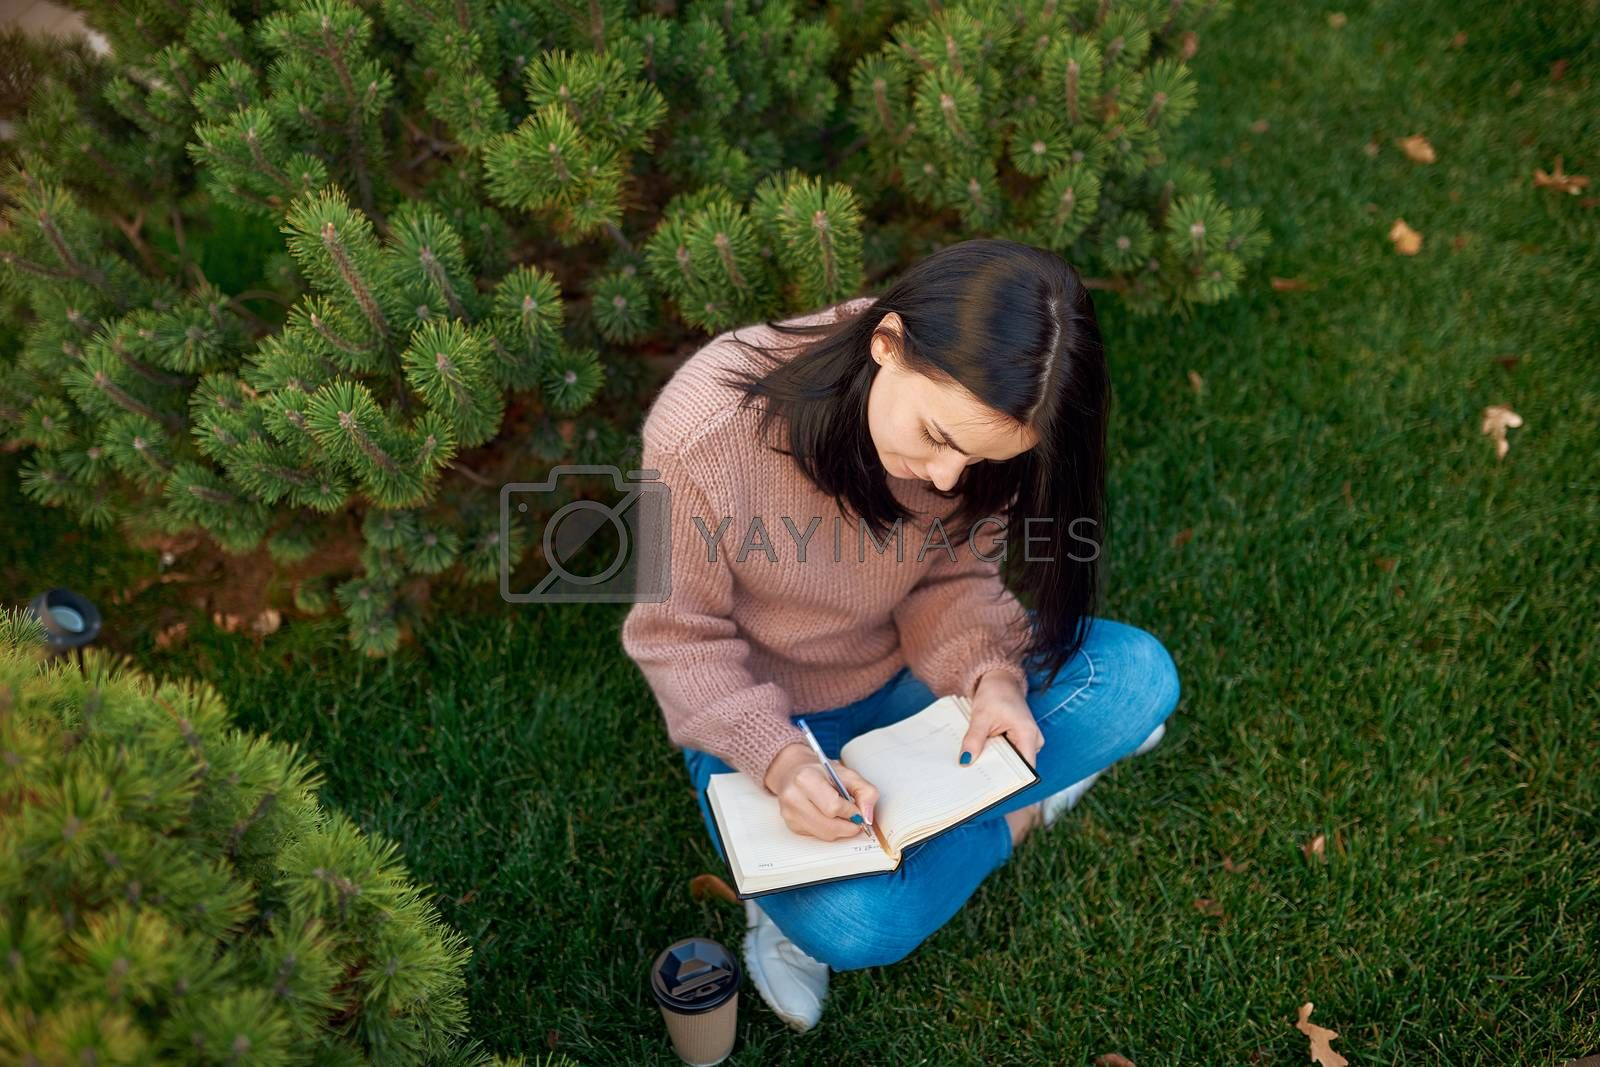 Top view of serious young female making some recordings in a thick copybook while sitting on a green grass lawn surrounded by conifers